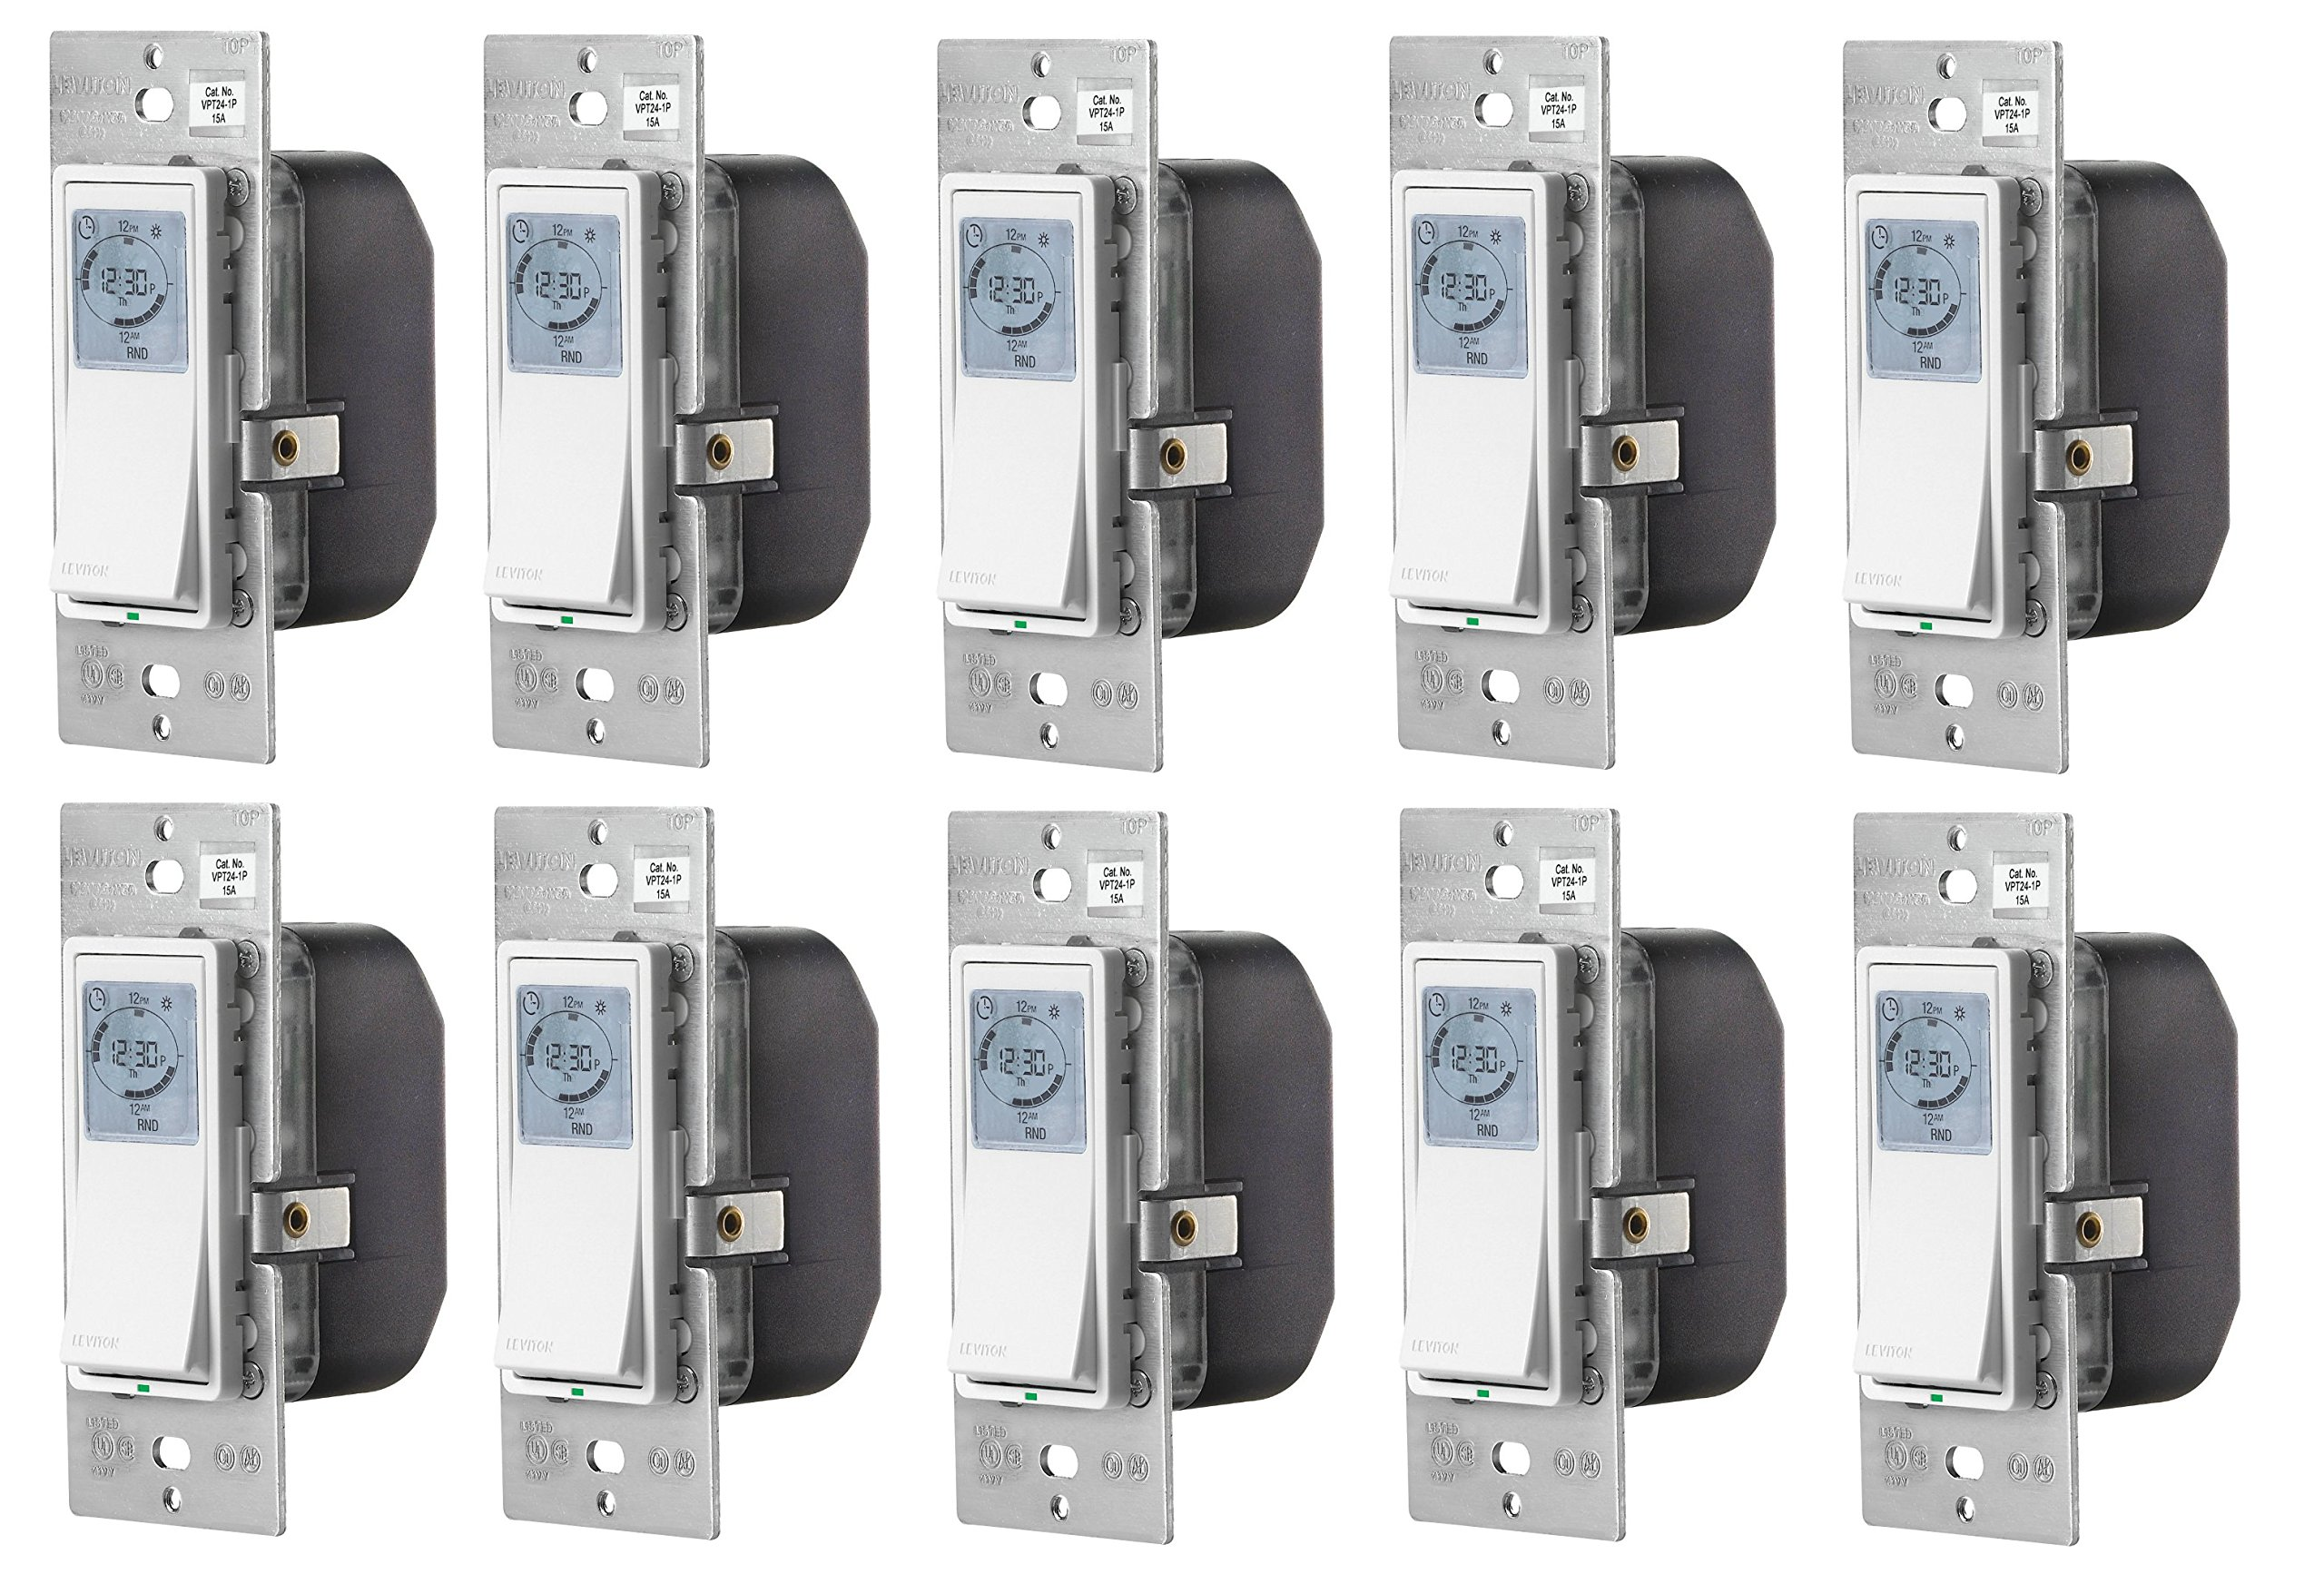 Leviton VPT24-1PZ Vizia 24-Hour Programmable Indoor Timer with Astronomical Clock, 10-Pack by Leviton